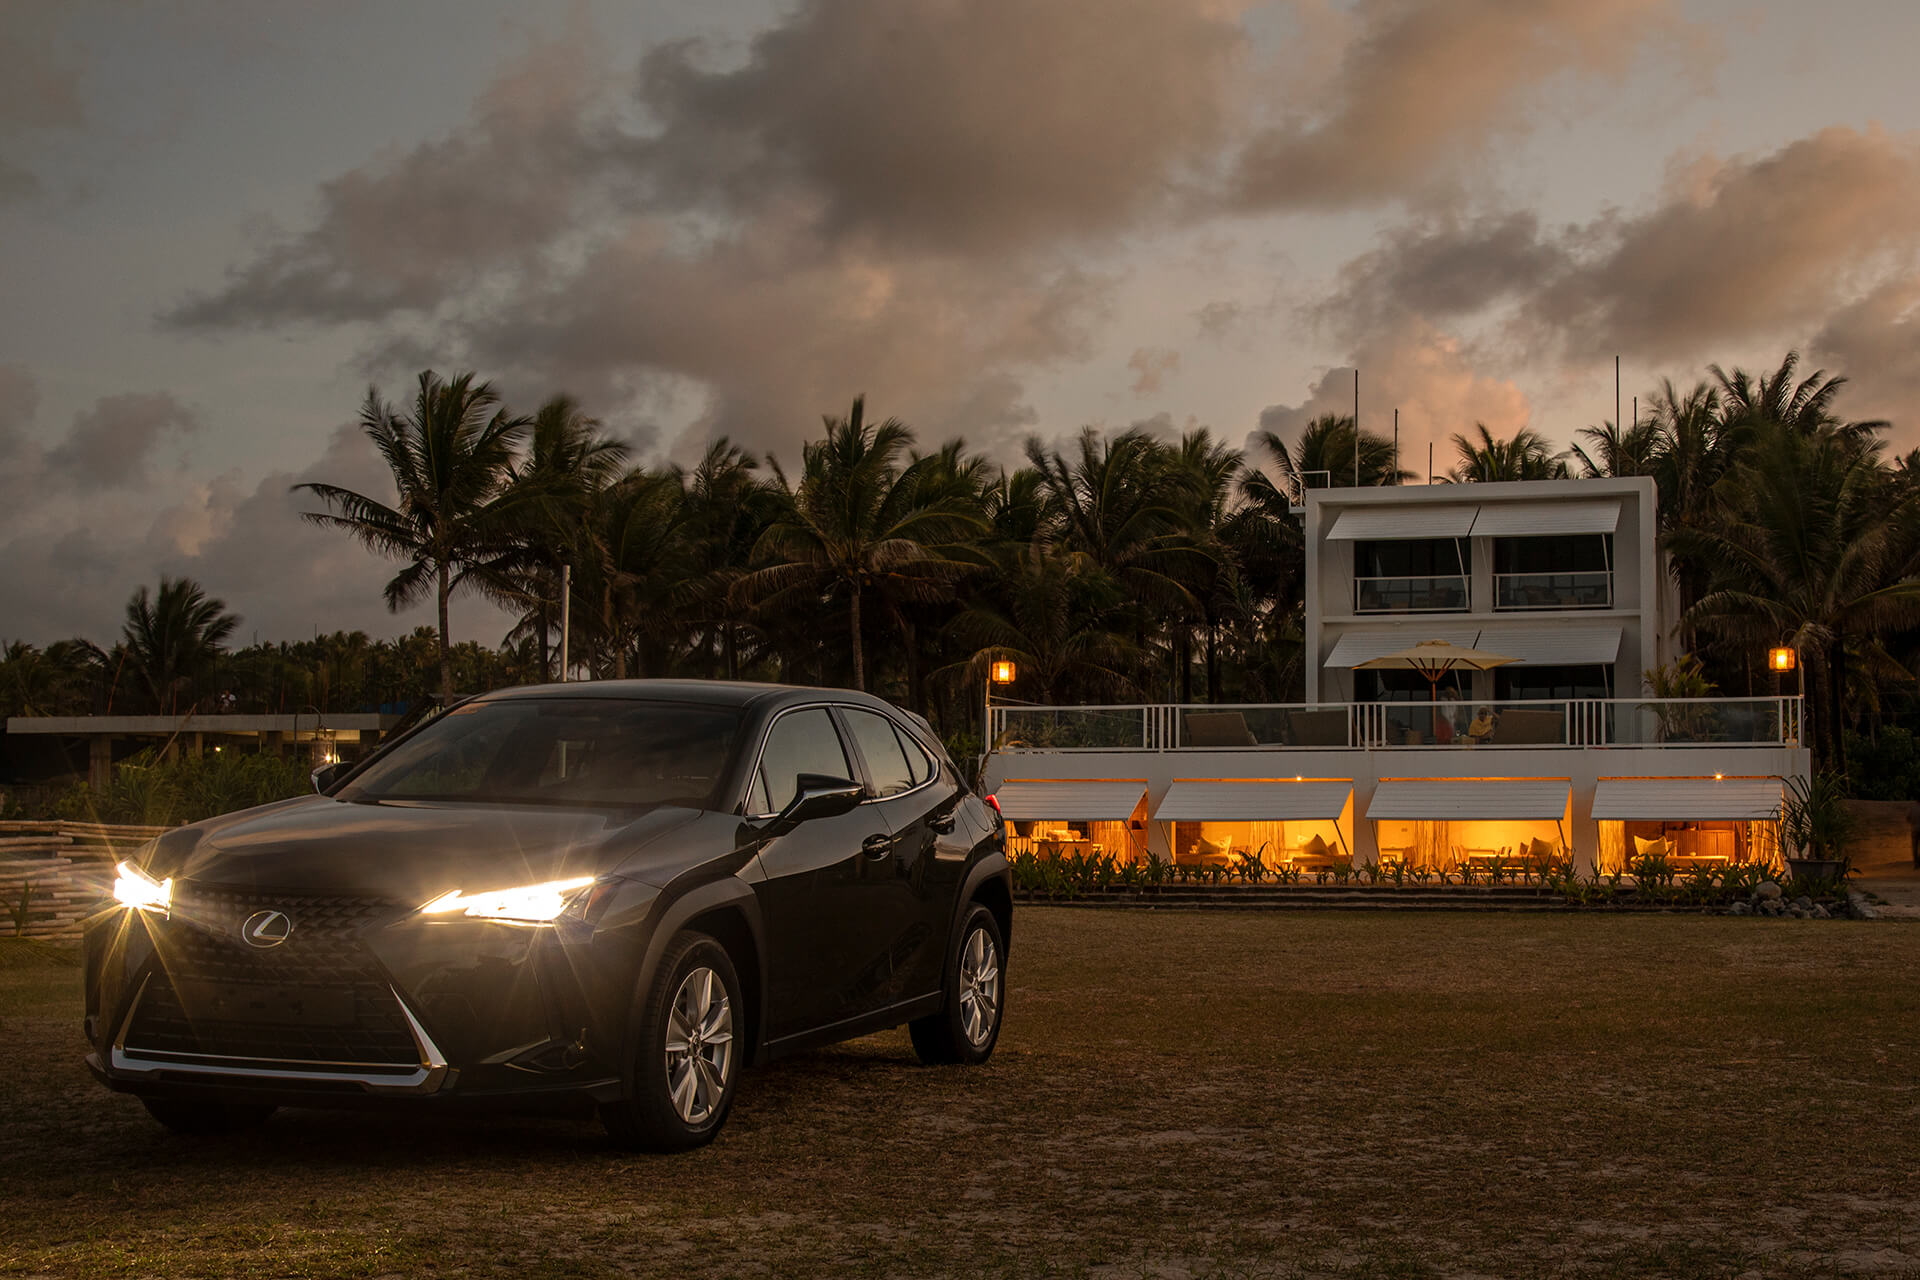 The Lexus UX photographed in front of Siama Surf at sunset.